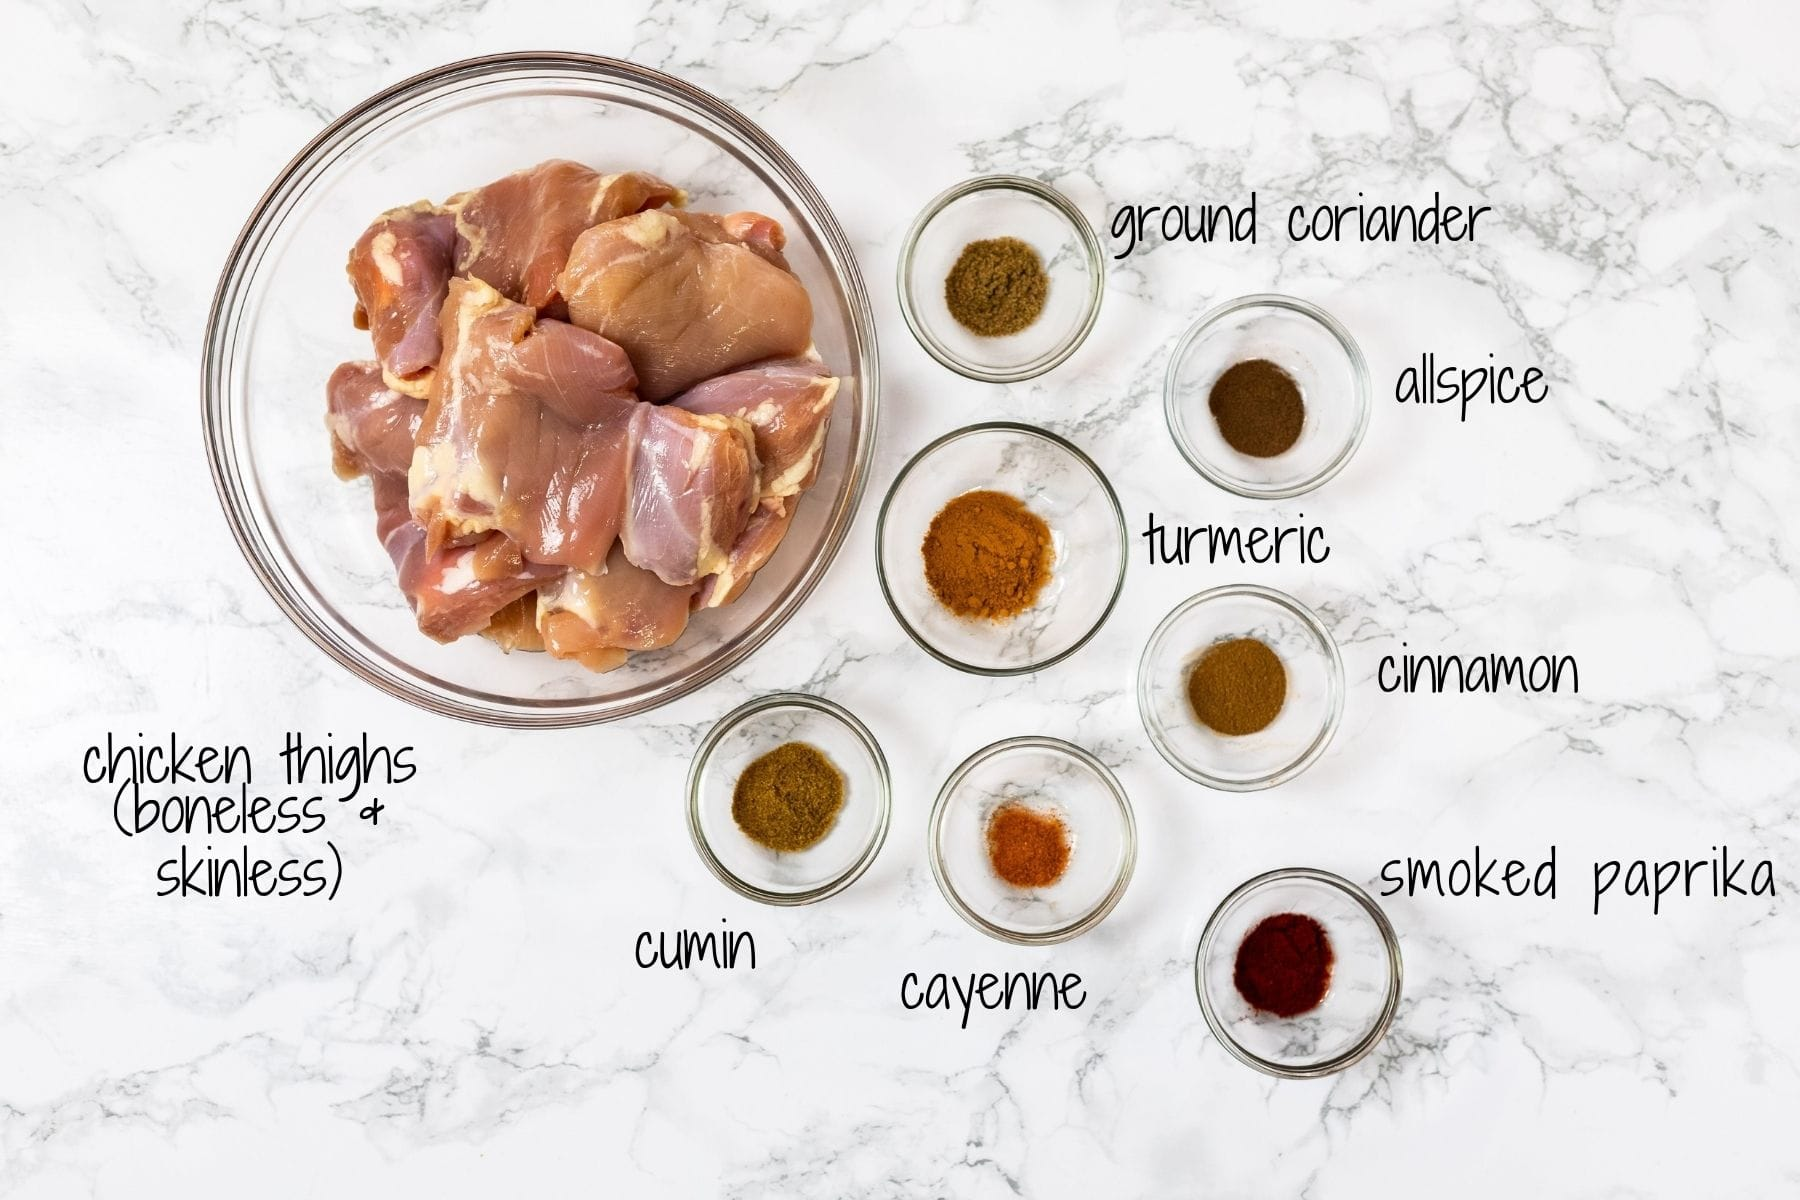 a top down view of ingredients for north African chicken with text labels.